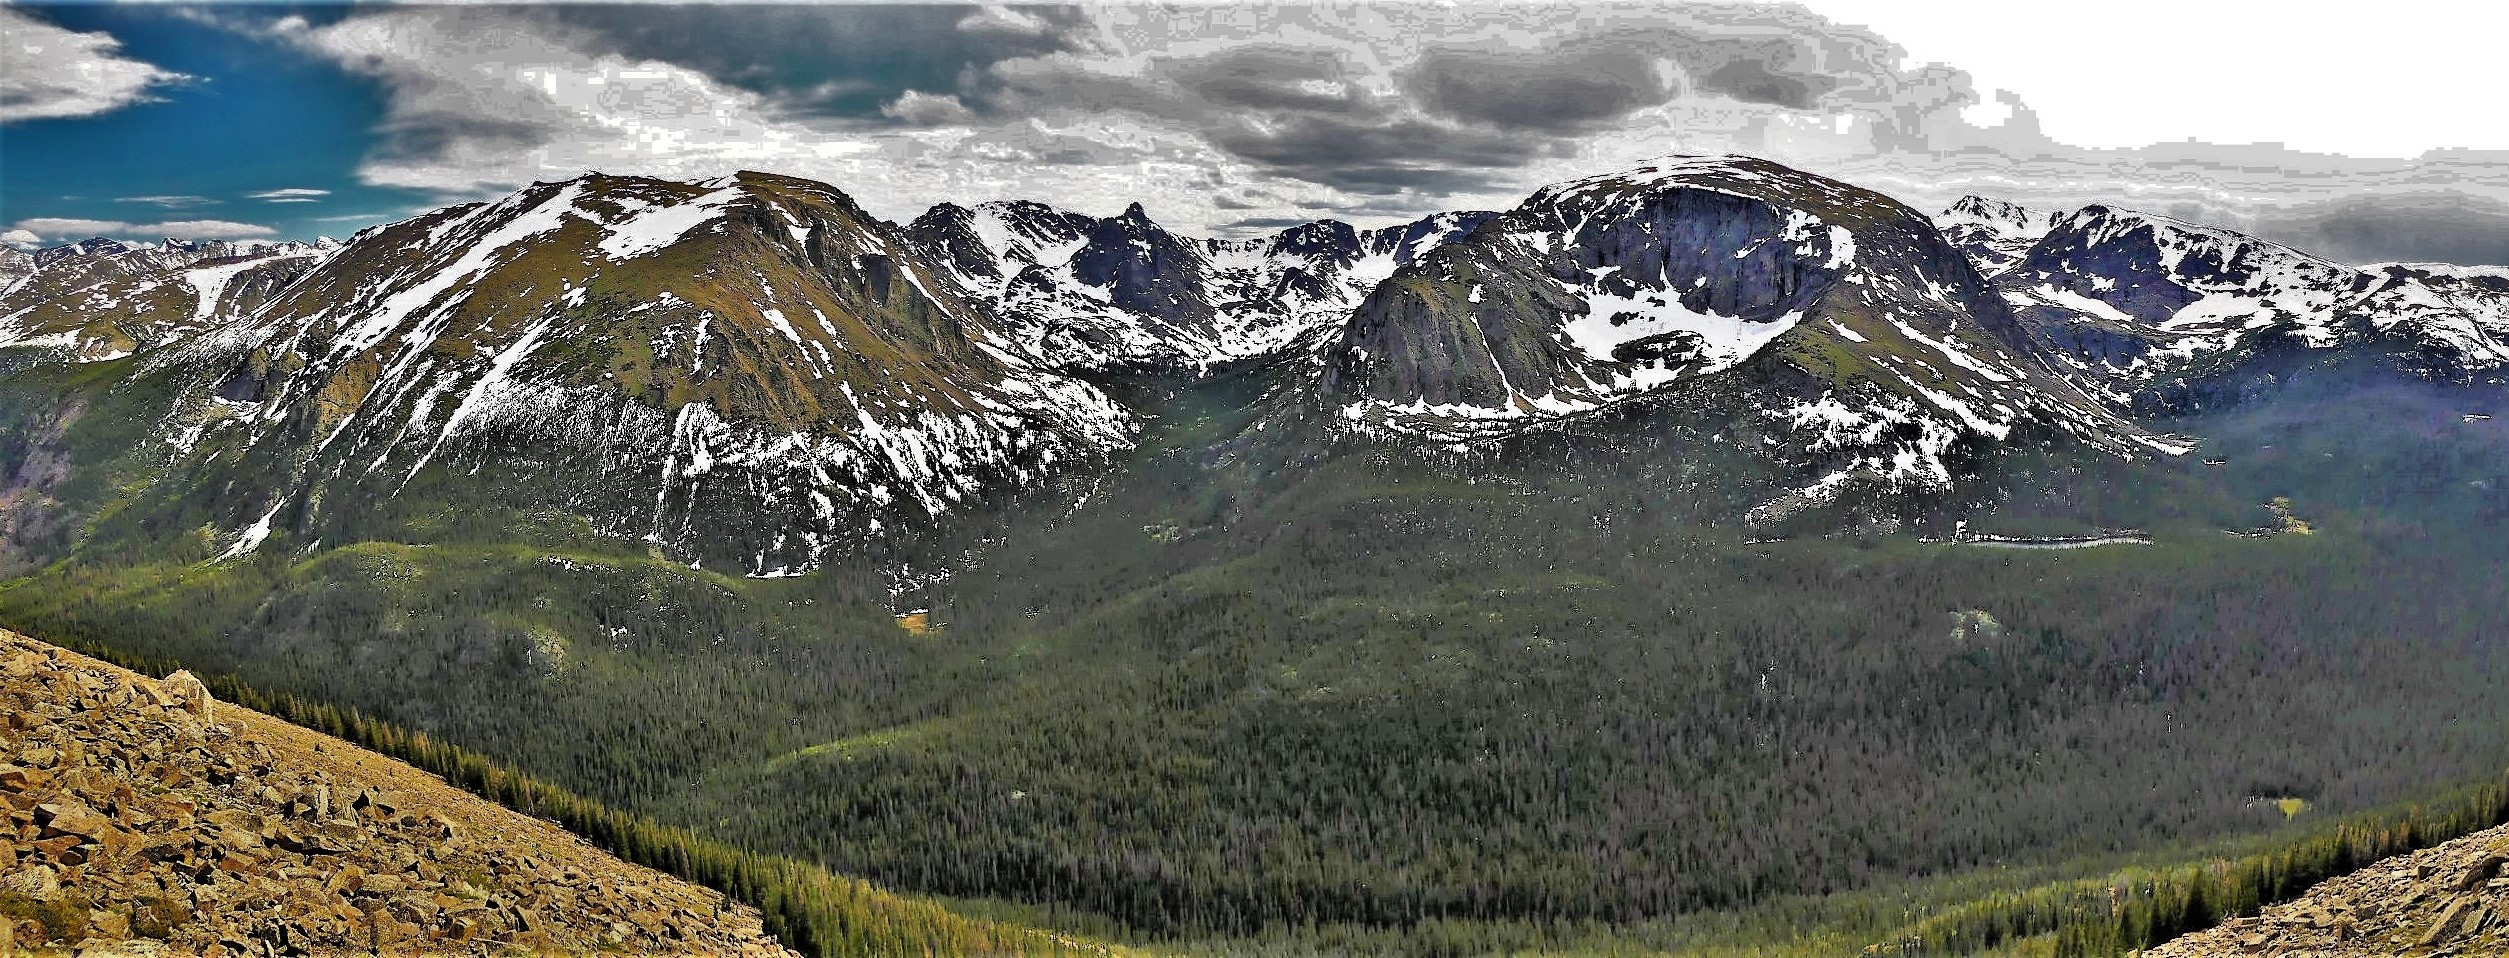 Forest Canyon, Rocky Mountain NP